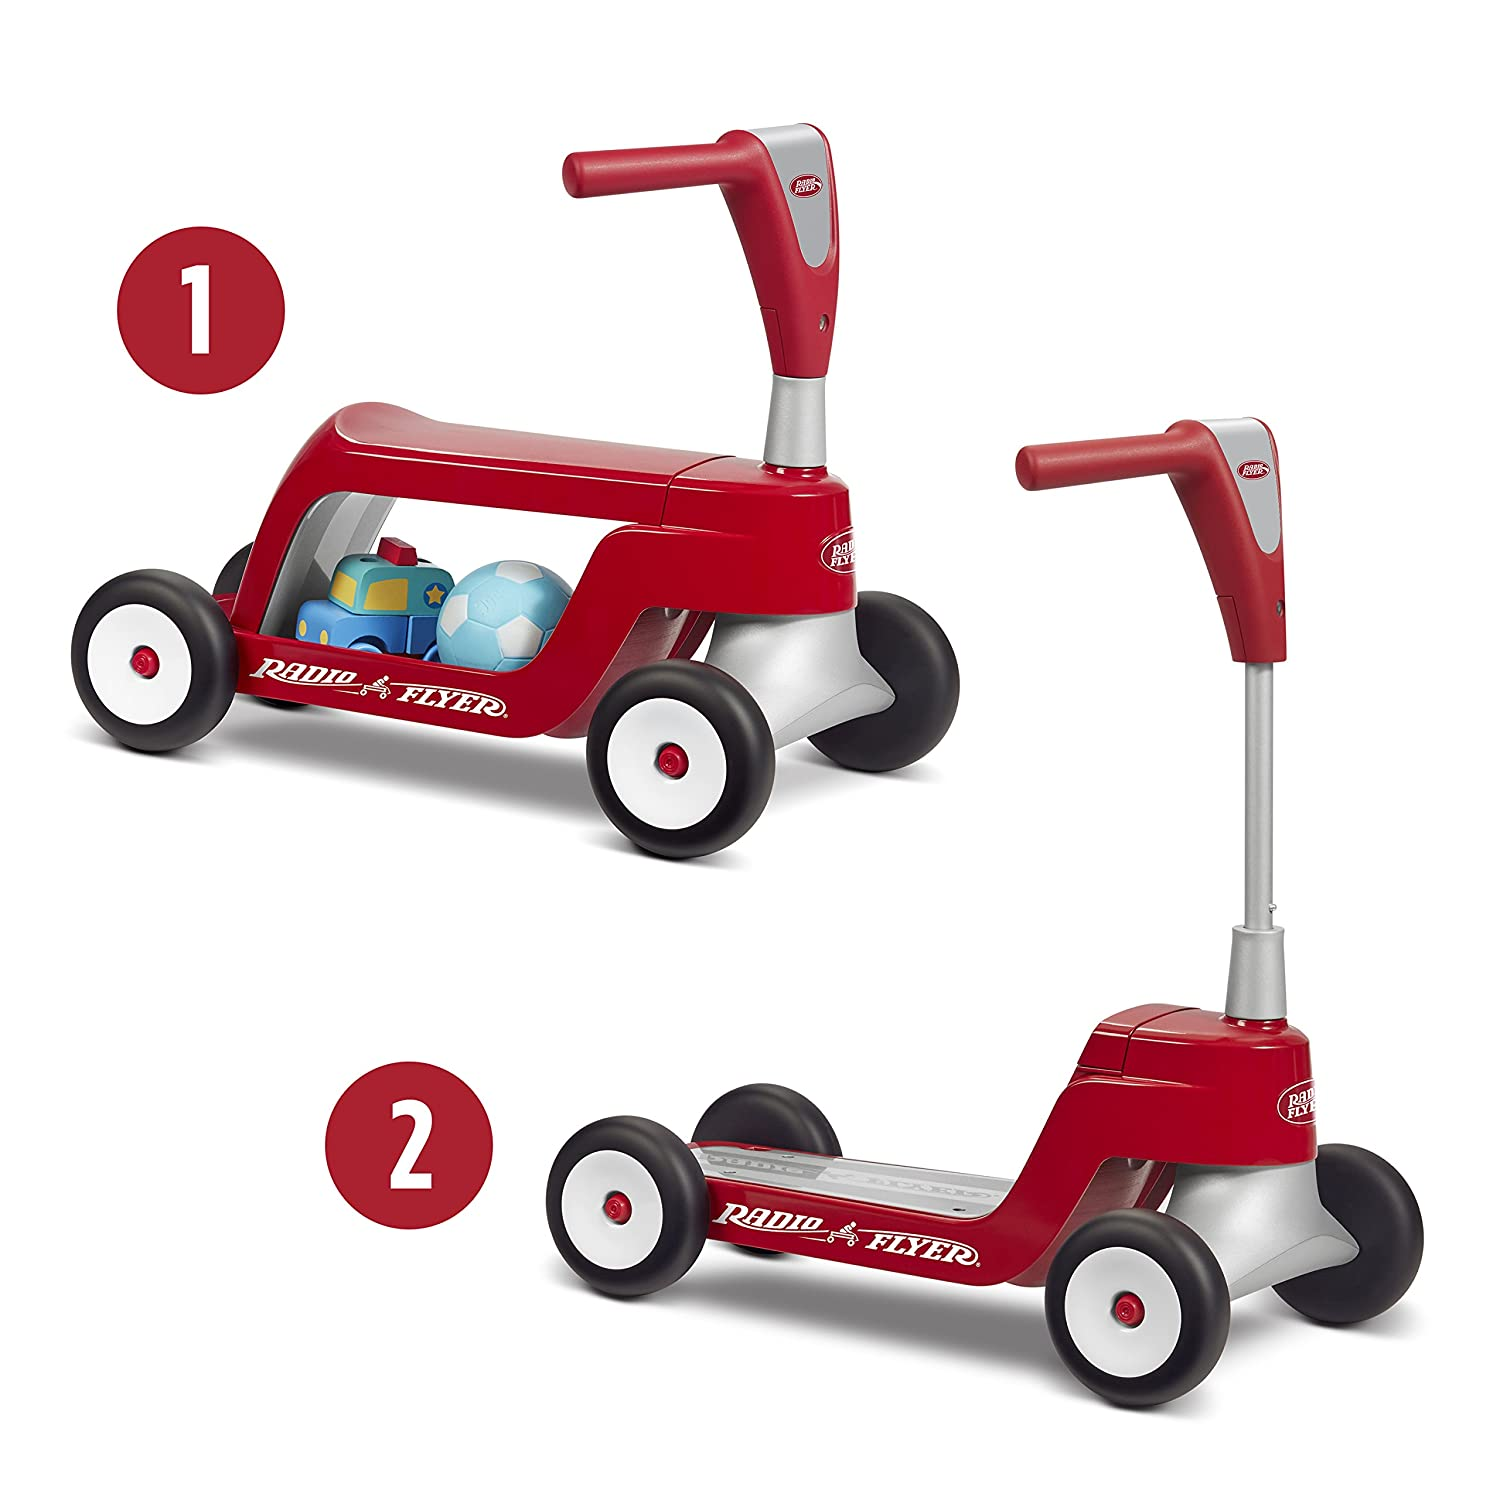 8317ff7d023 Radio flyer scoot scooter ride on toys games jpg 1500x1500 Radio flyer buggy